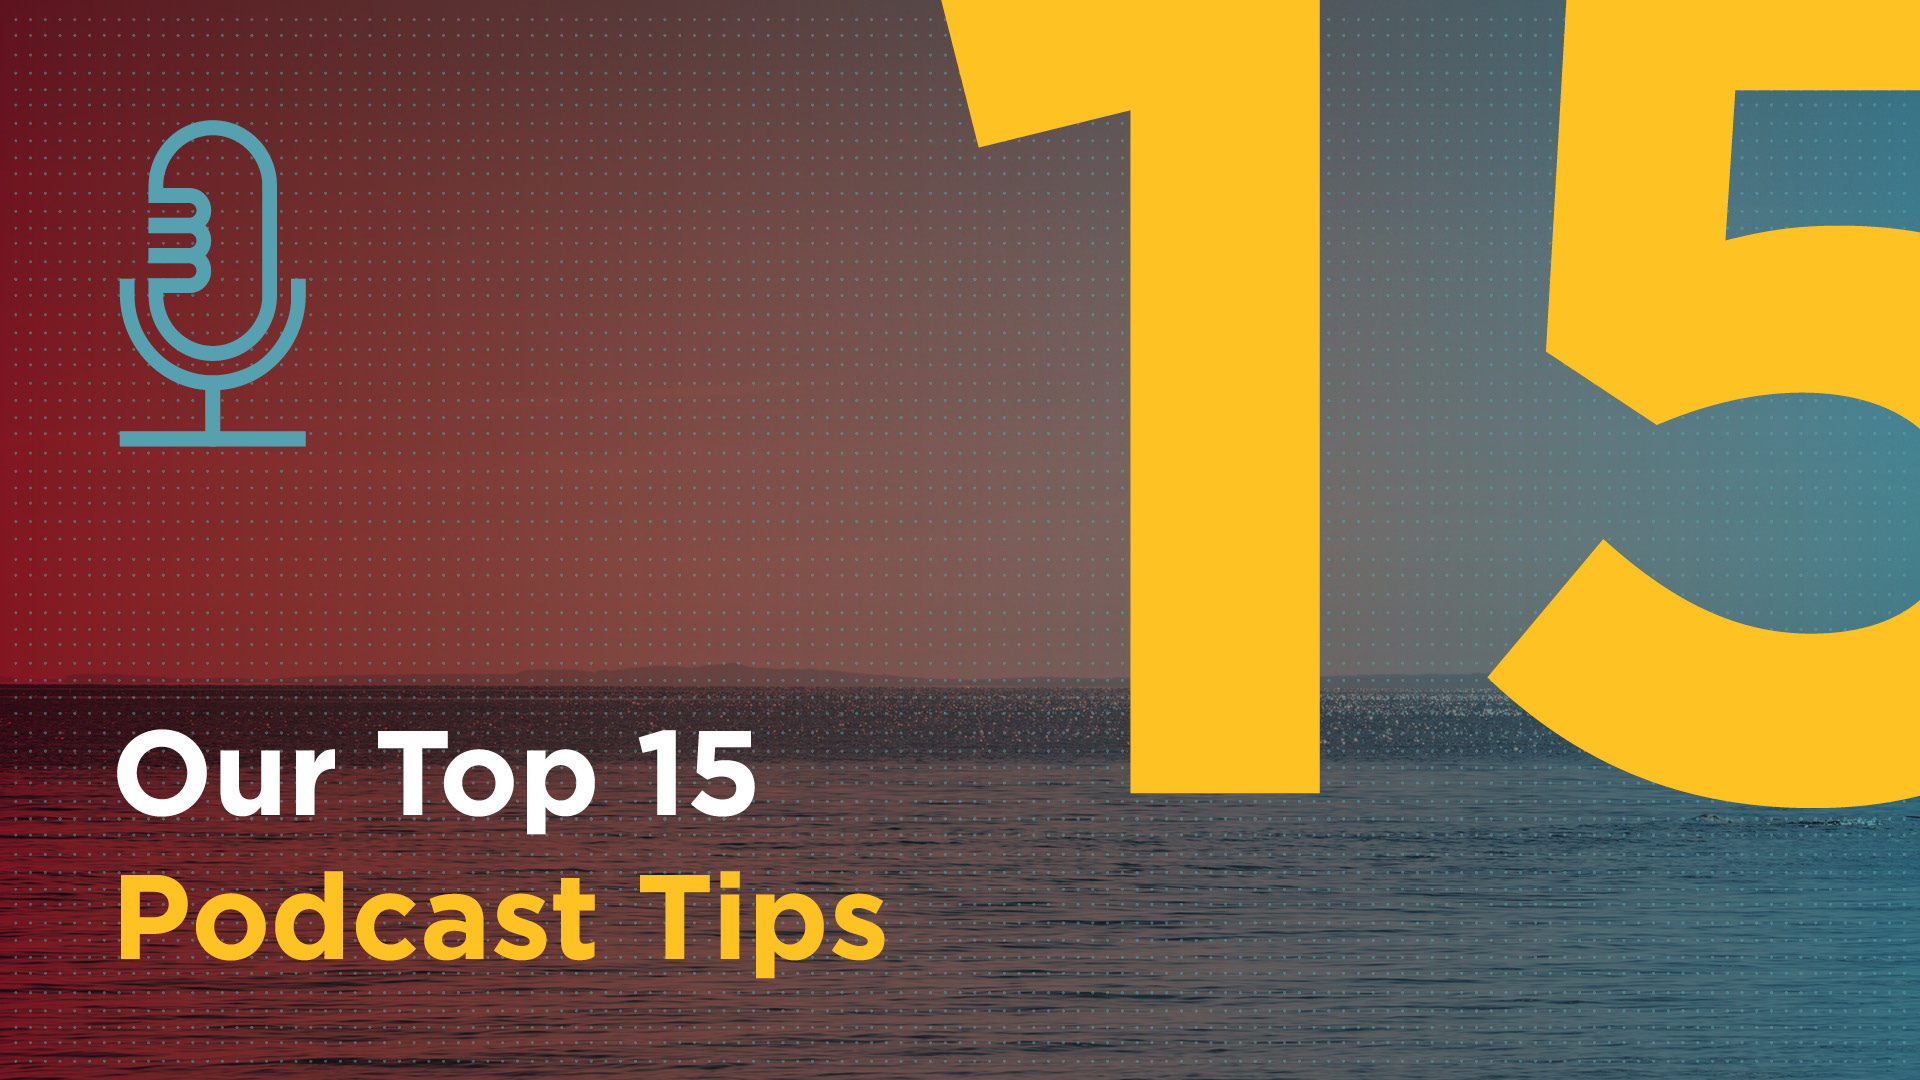 Our Top 15 Podcast Tips Featured Image